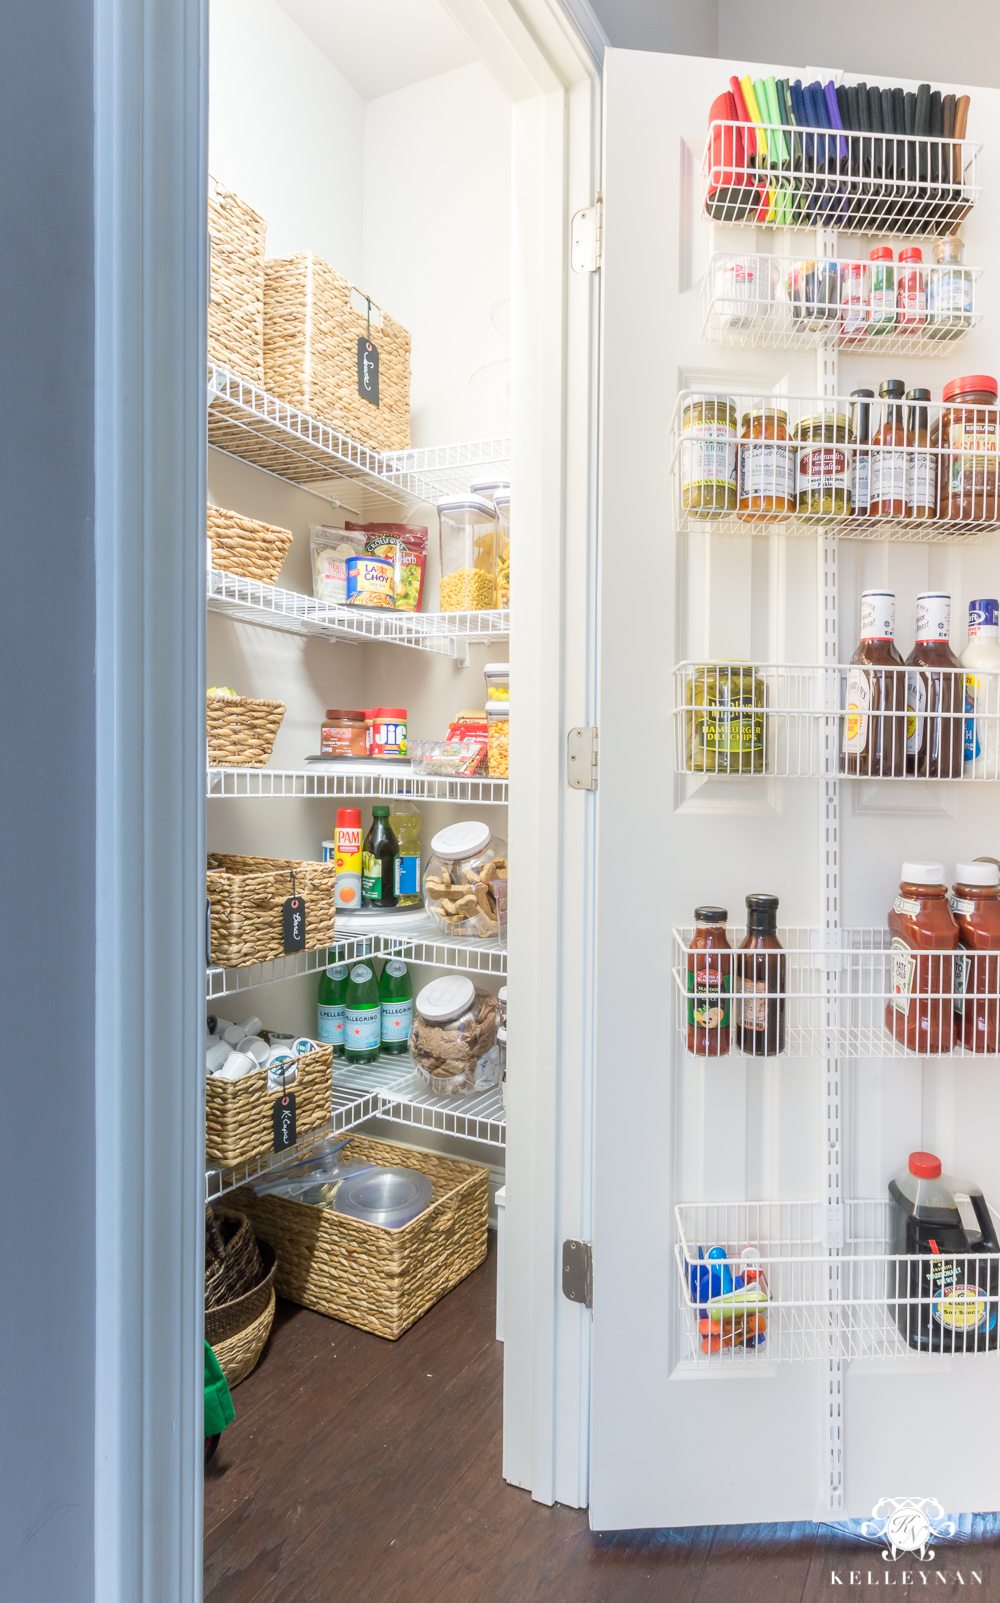 Organized pantry ideas for small reach-ins